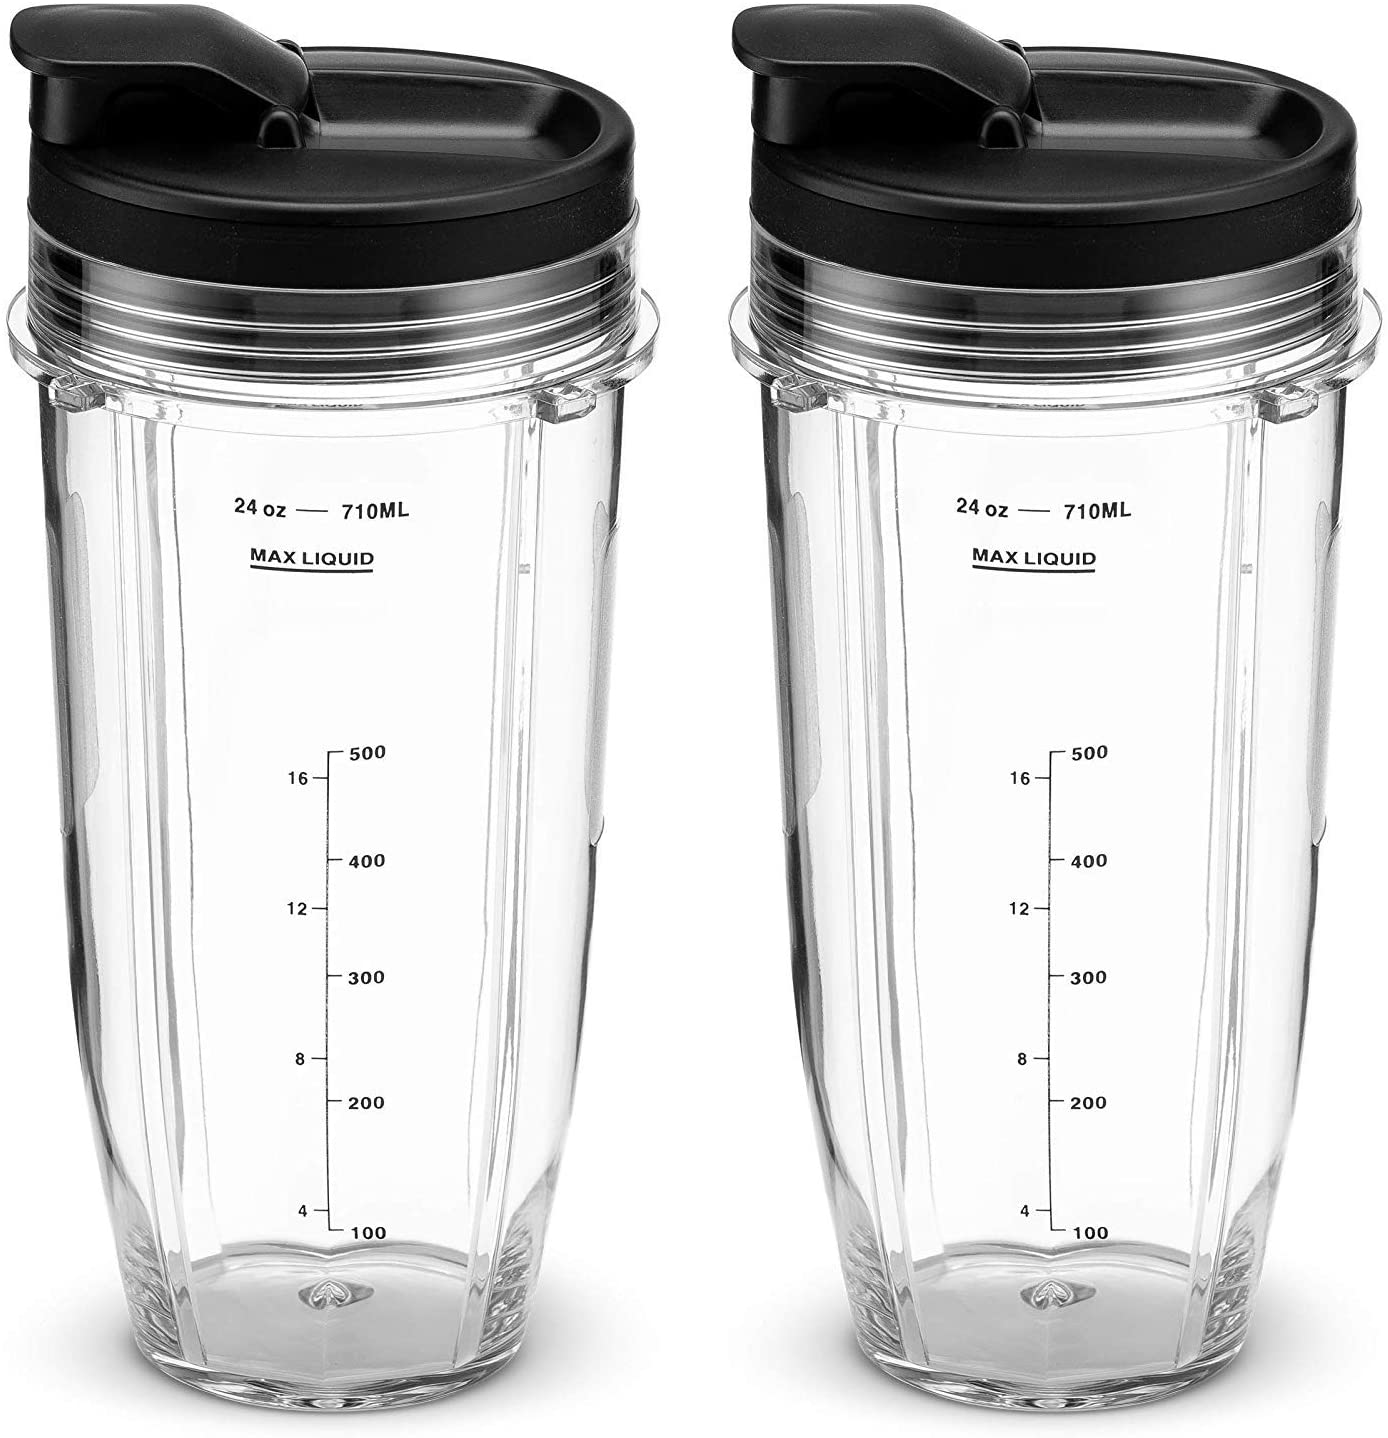 Nutri Ninja 24 oz. Tritan Cups with Sip & Seal Lids. Compatible with BL480, BL490, BL640, BL680 Auto IQ Series Blenders (Pack of 2)